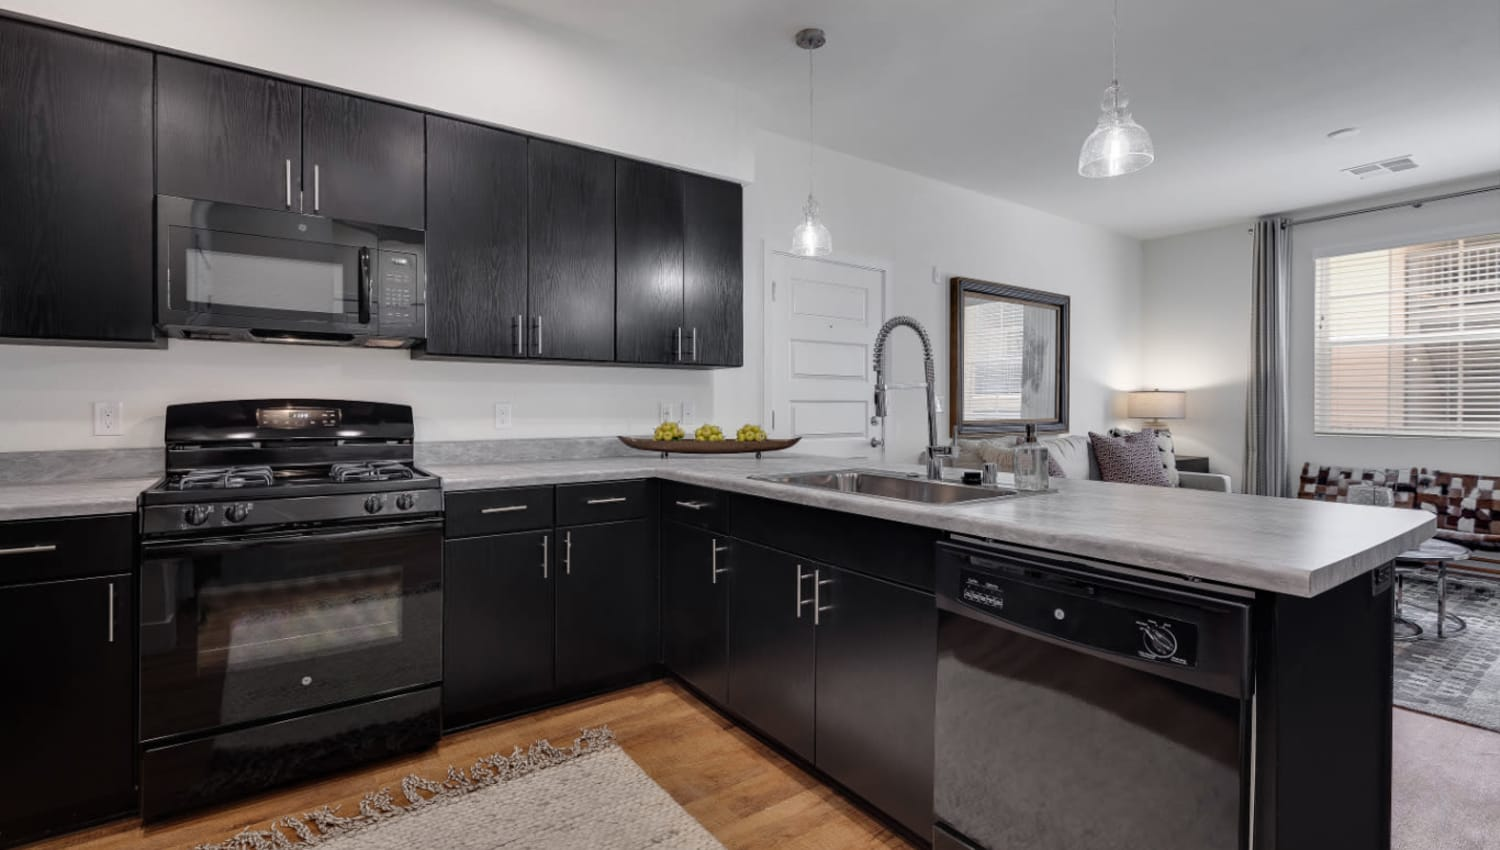 Quartz countertops and stainless-steel appliances in a model home's kitchen at Olympus Rodeo in Santa Fe, New Mexico